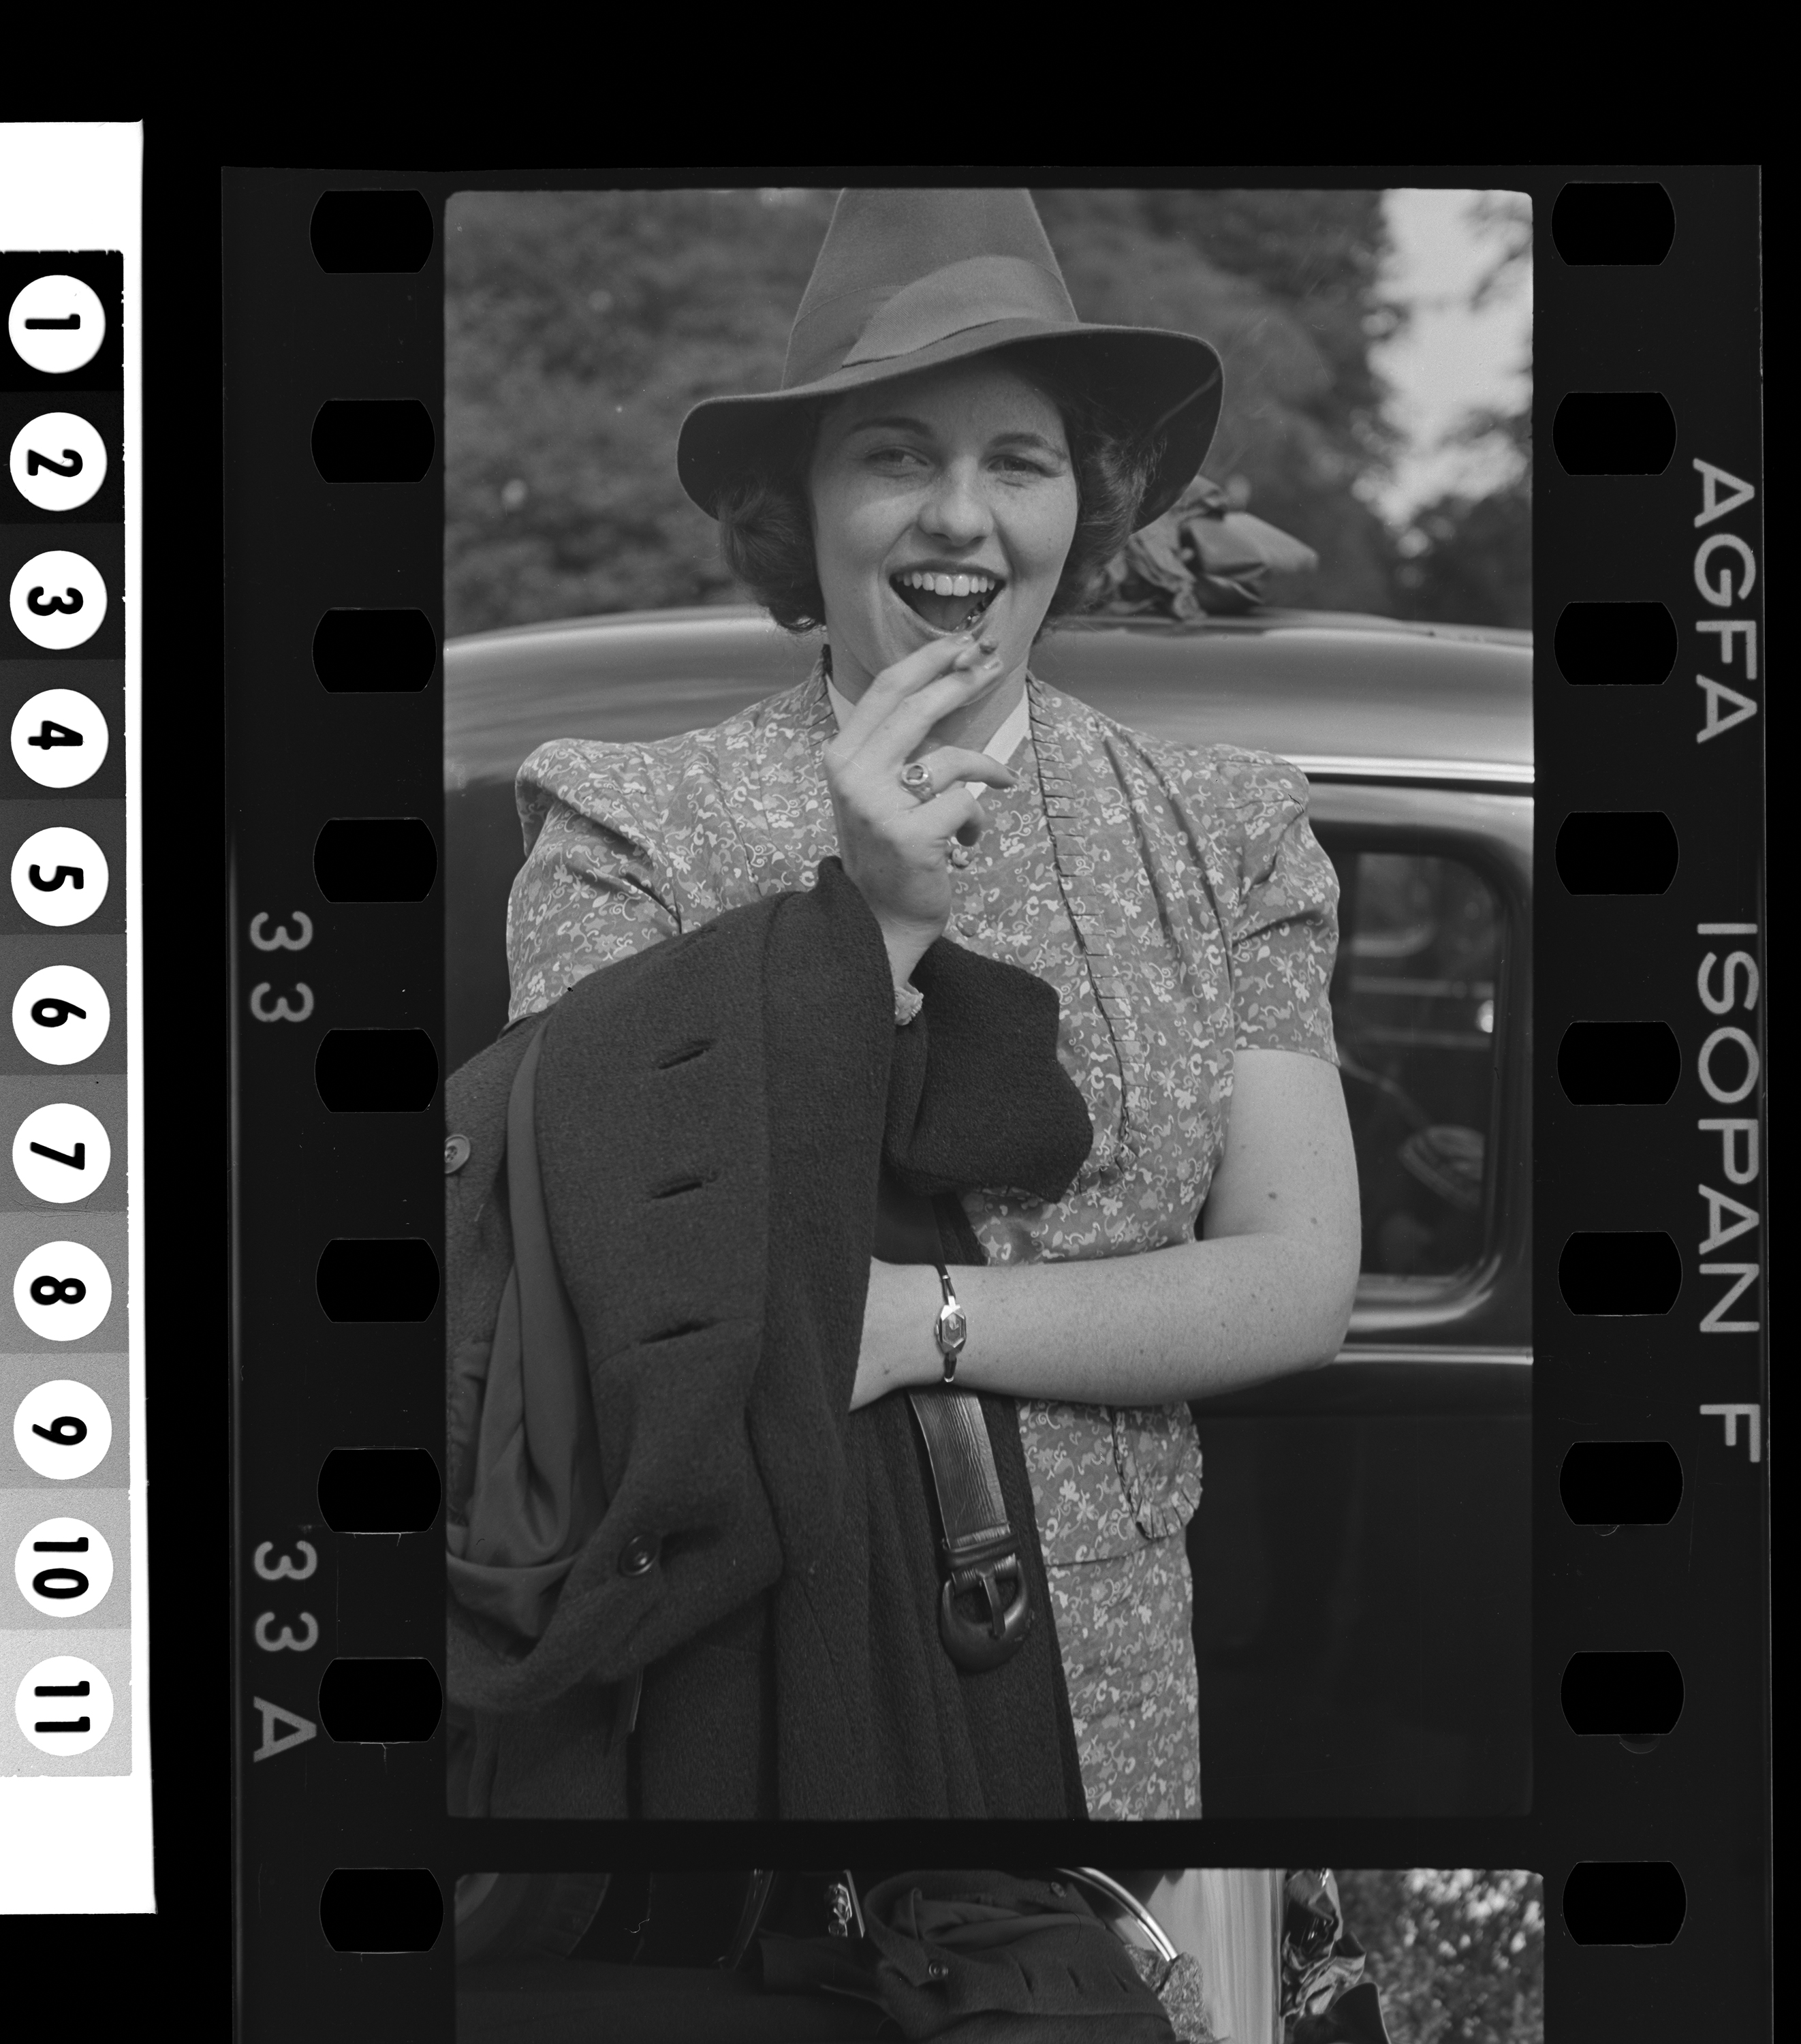 KFC1044N. Rosemary Kennedy. Kilcroney, Ireland, ca. 1938 1 negative (black-and-white; 35 mm; film/plastic: nitrate) © John F. Kennedy Library Foundation